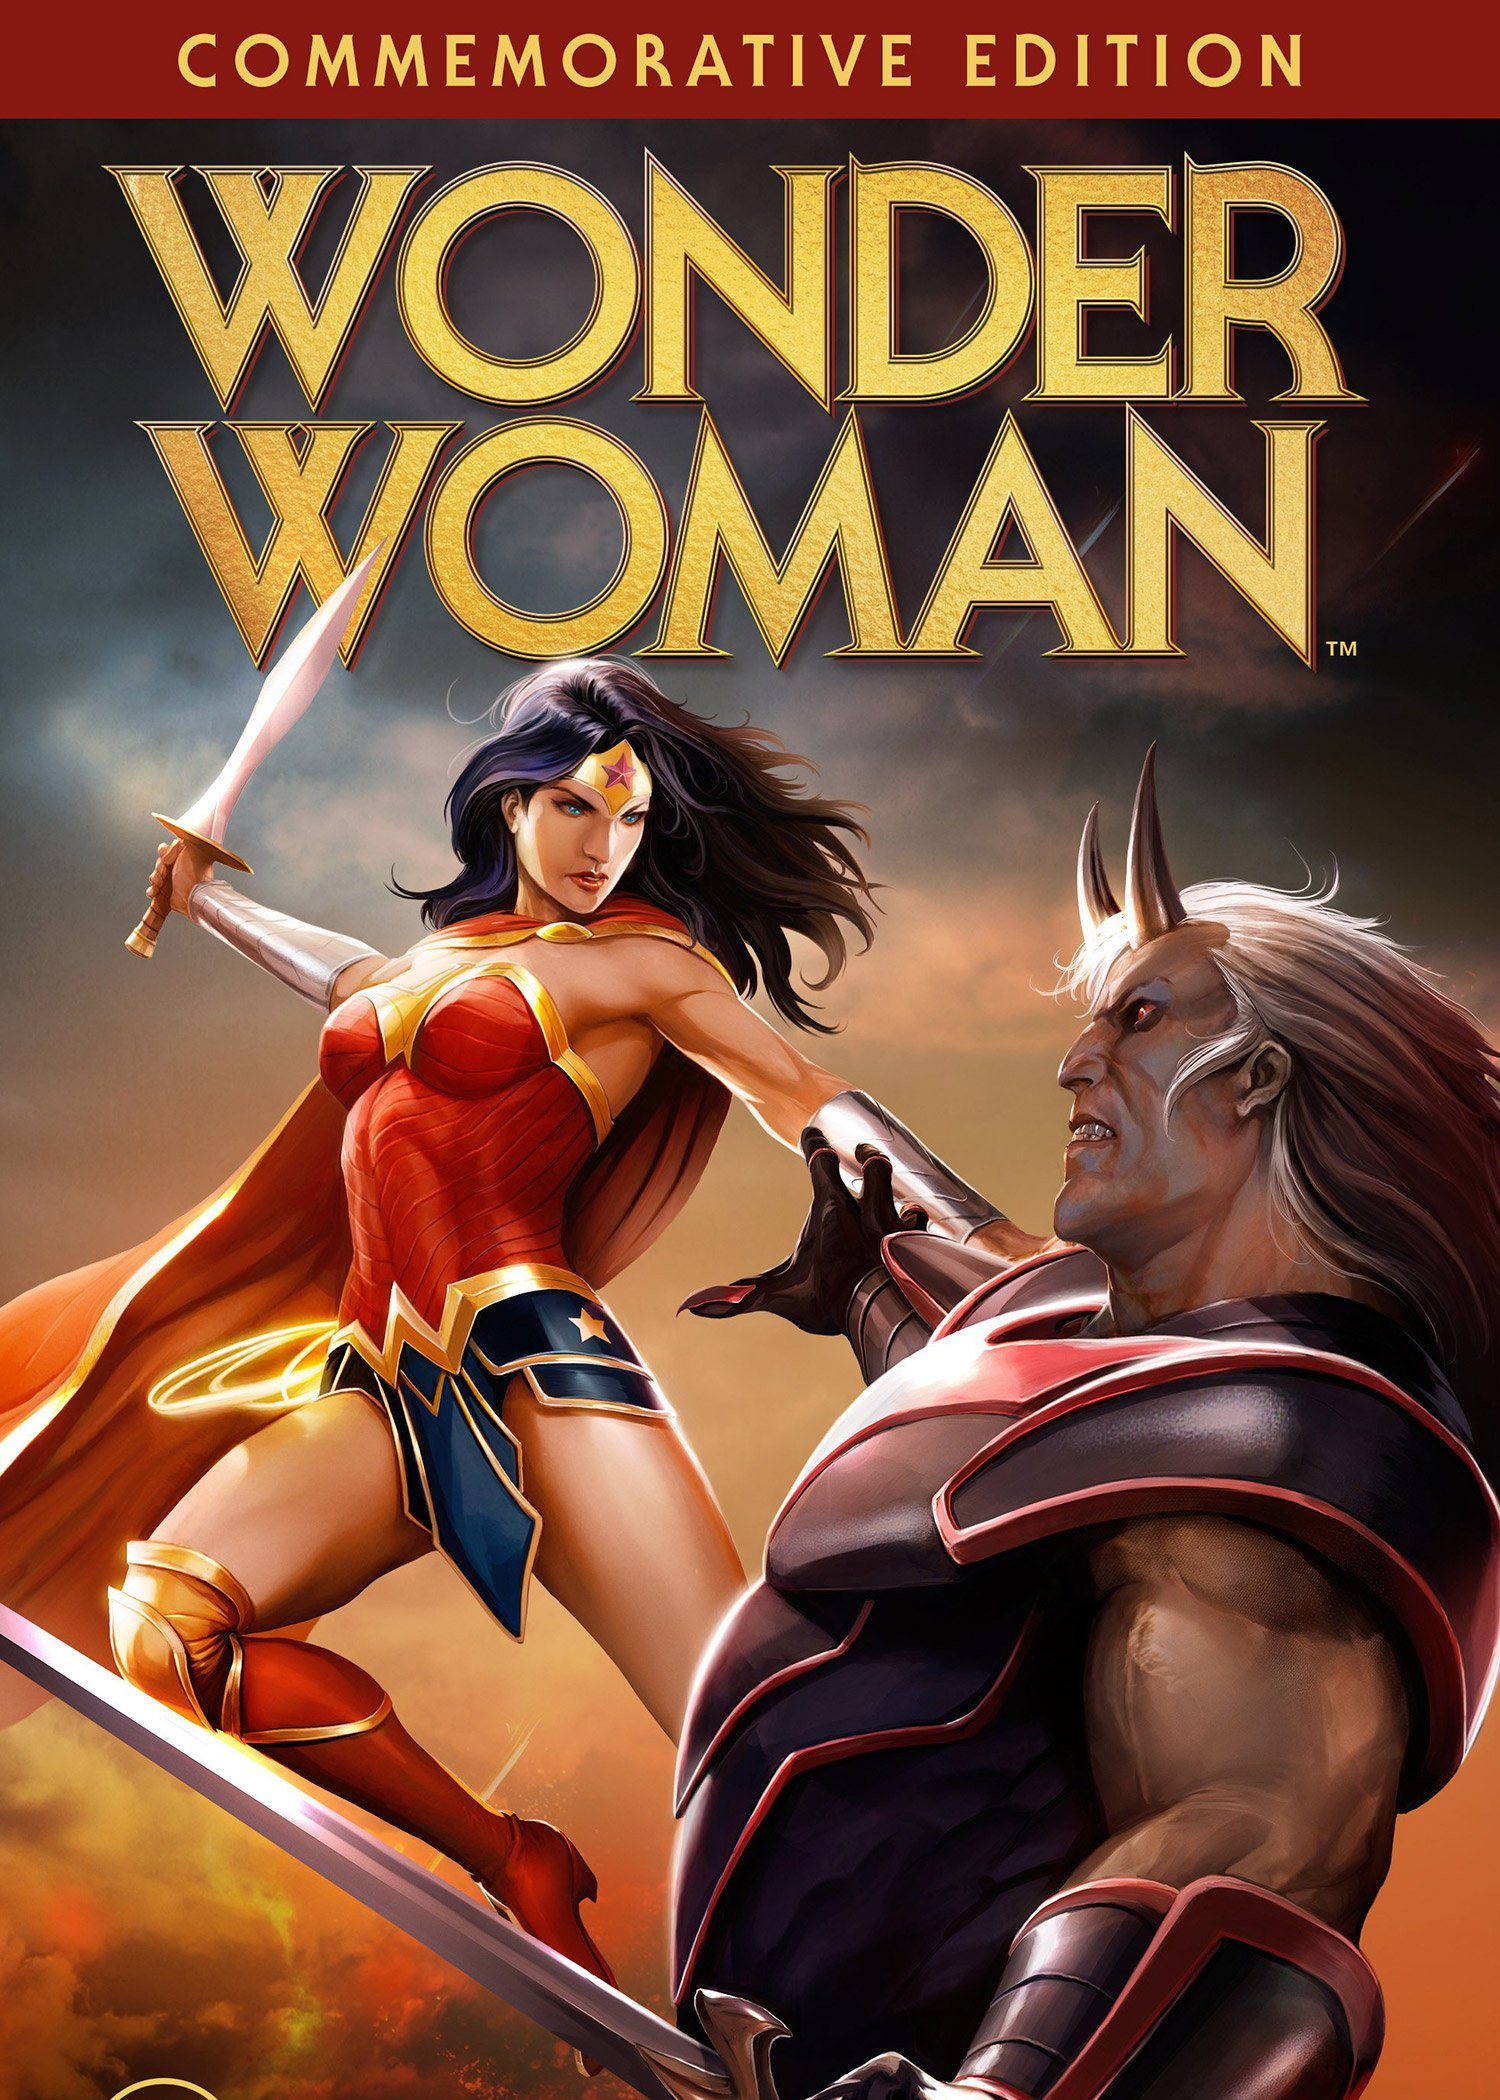 Image of Wonder Woman: Commemorative Edition